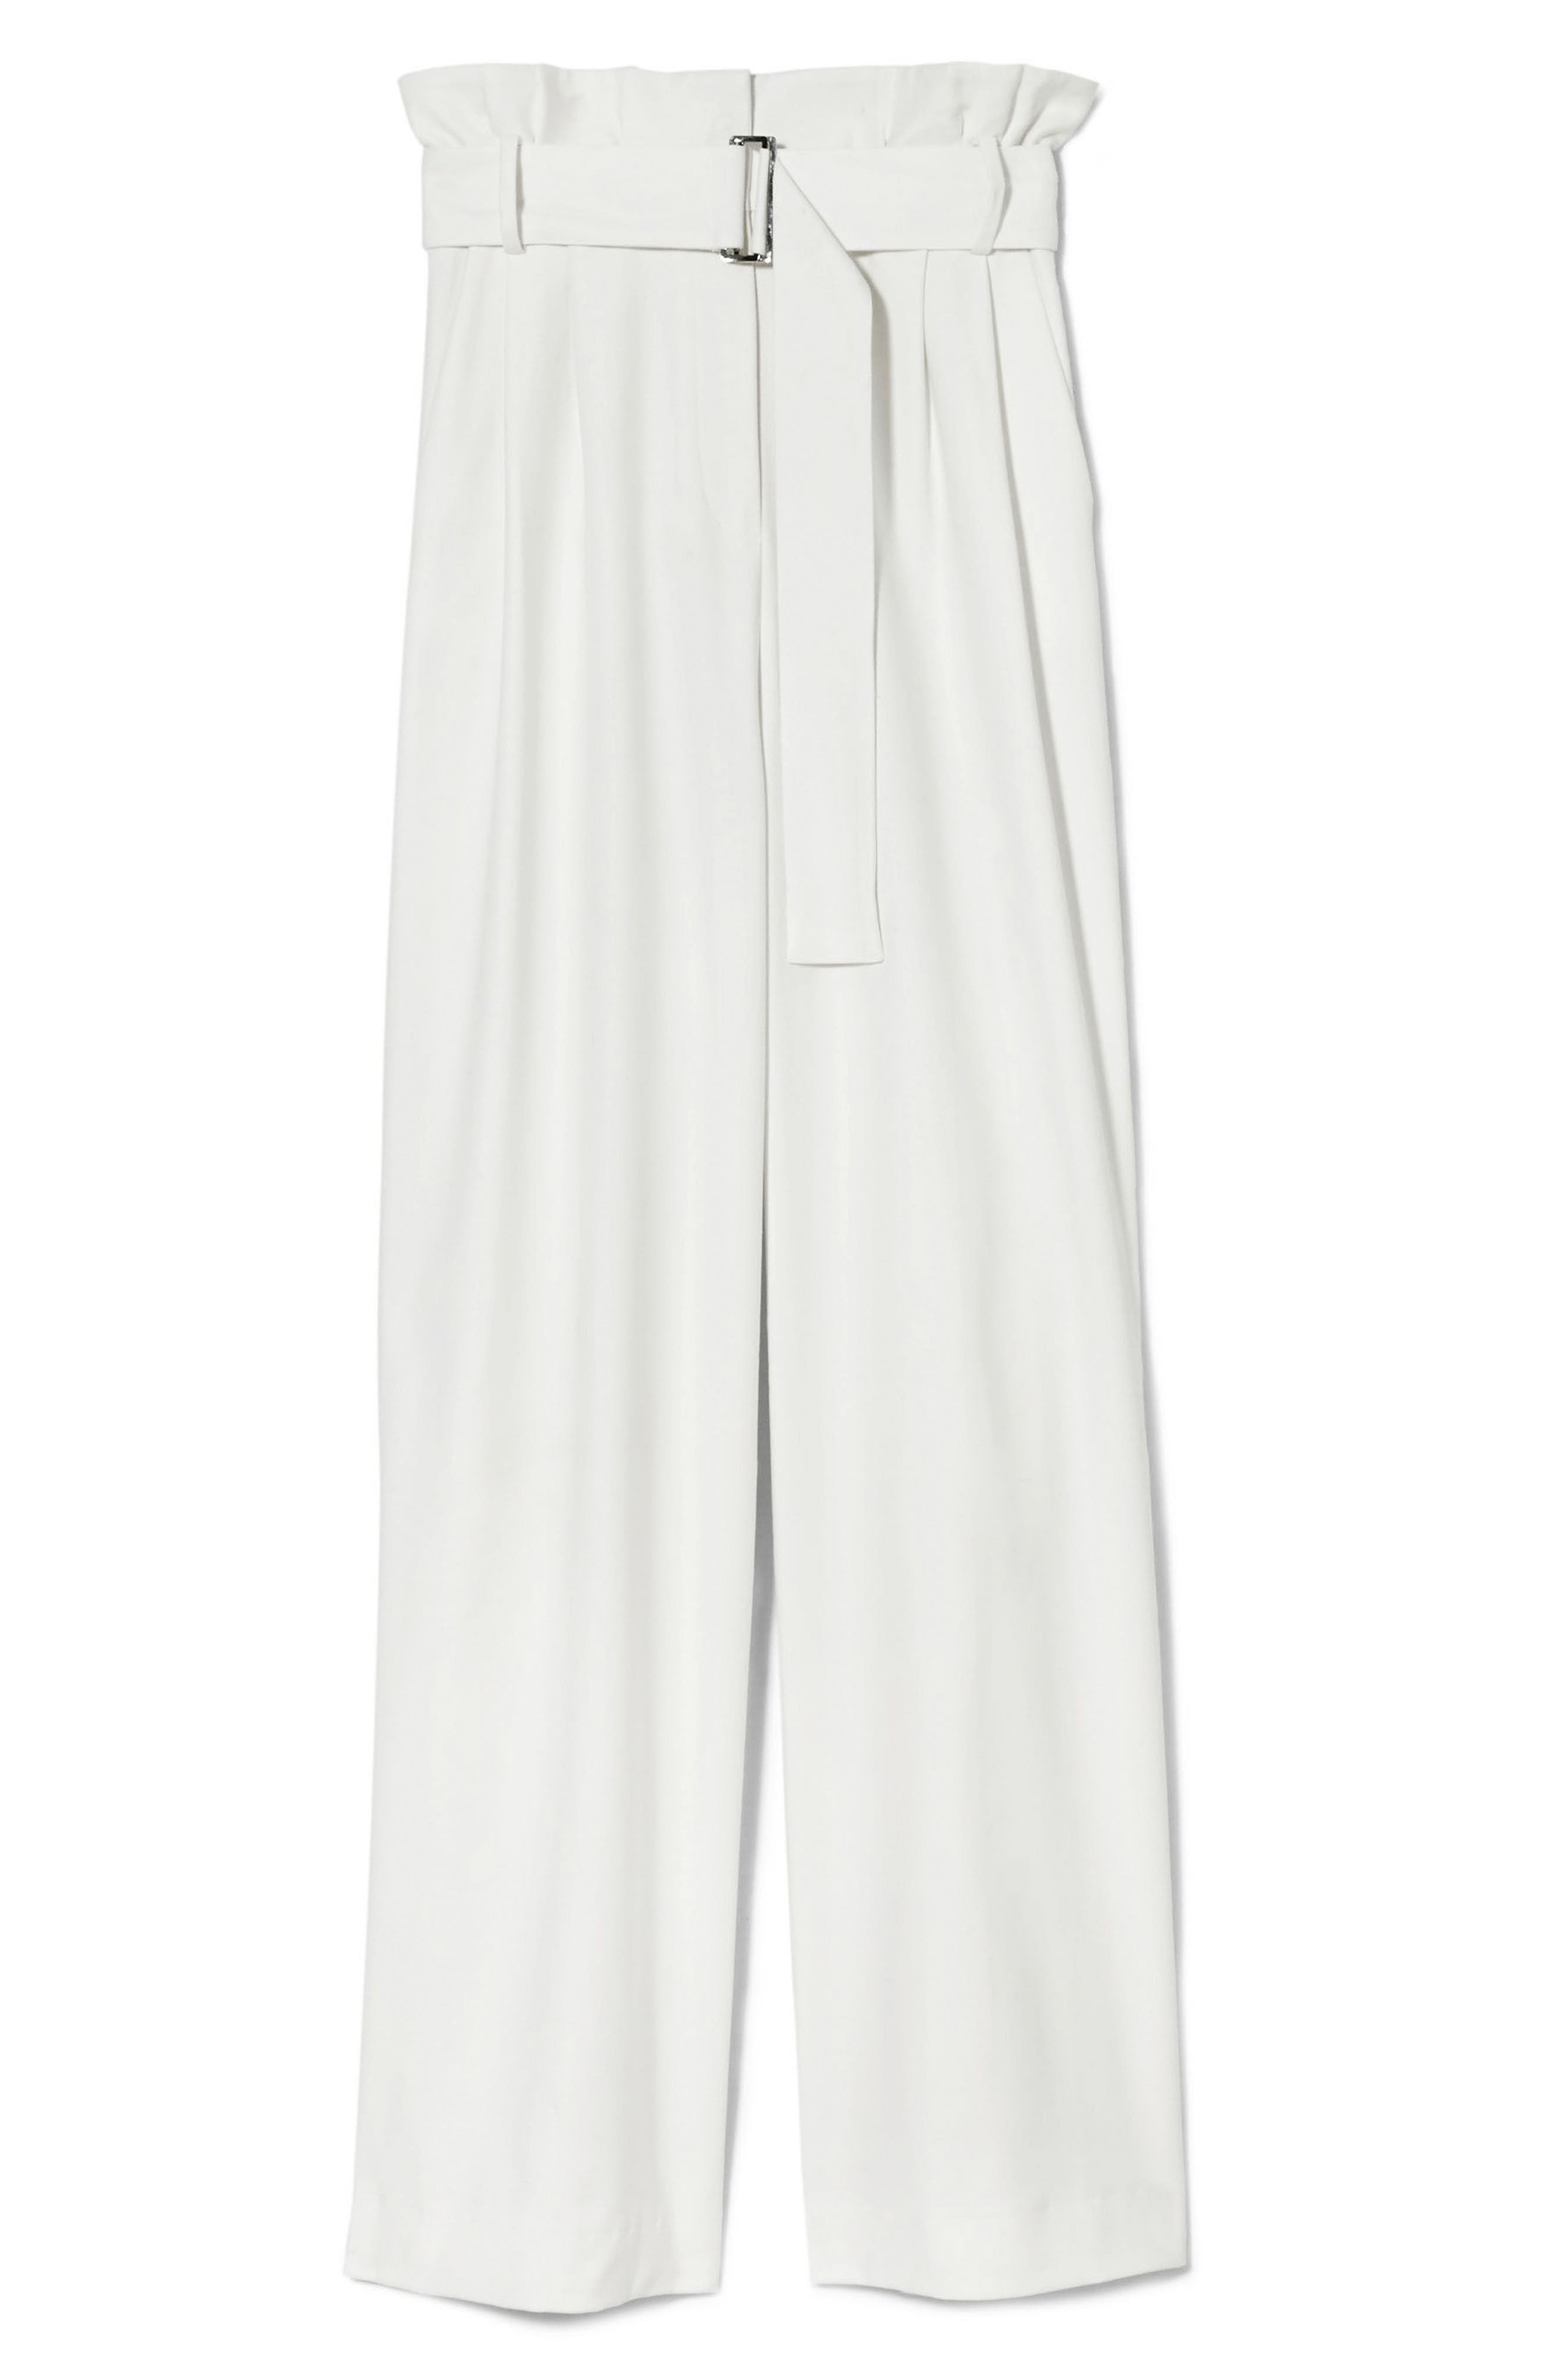 Wide Leg Belted Pants,                             Alternate thumbnail 4, color,                             New Ivory